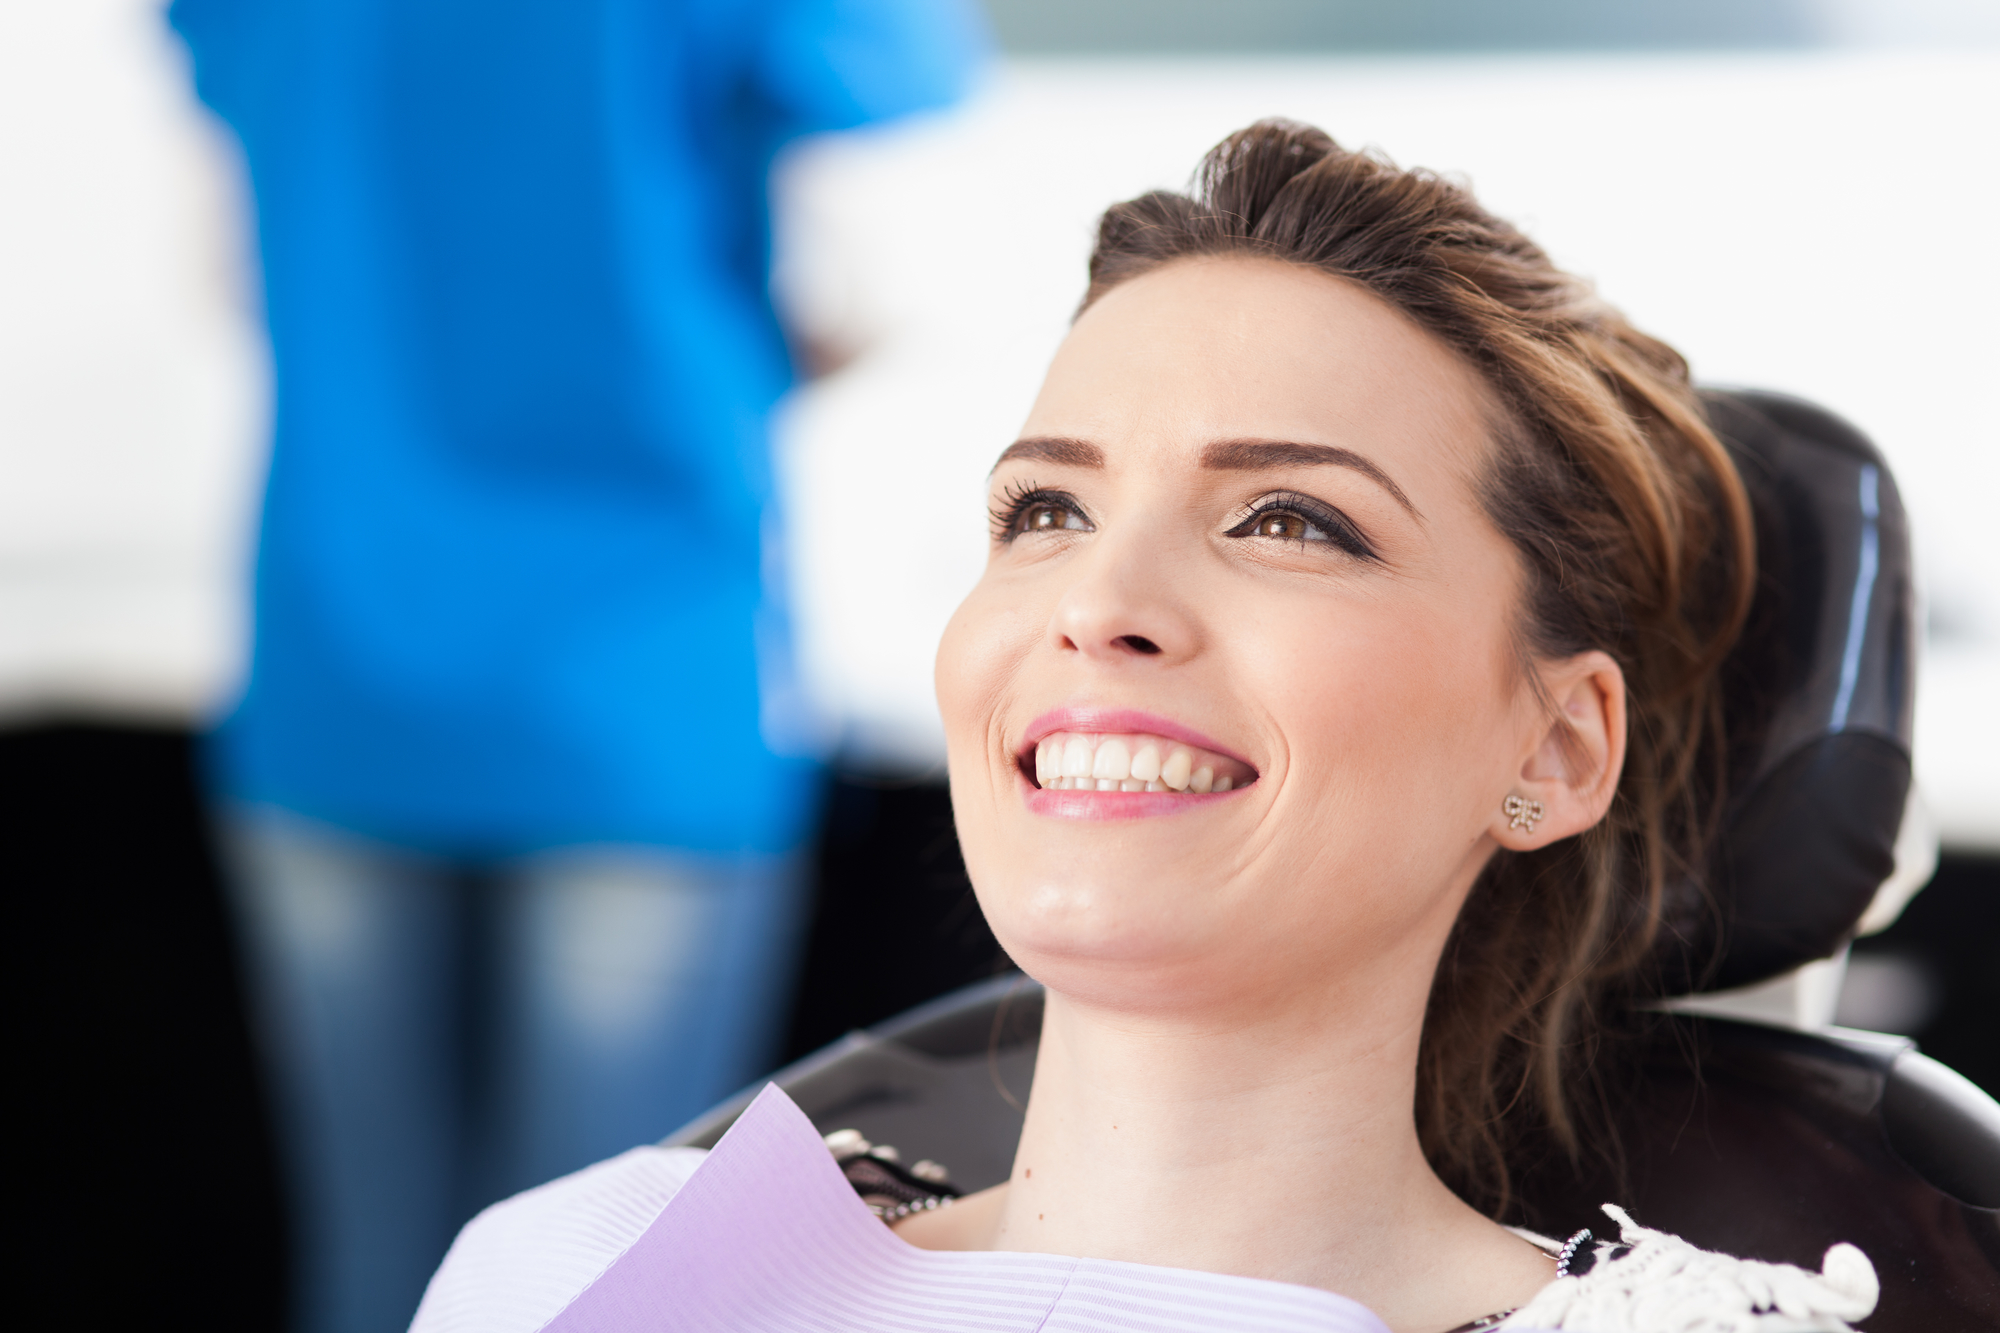 where can I get good dental implants coral springs?